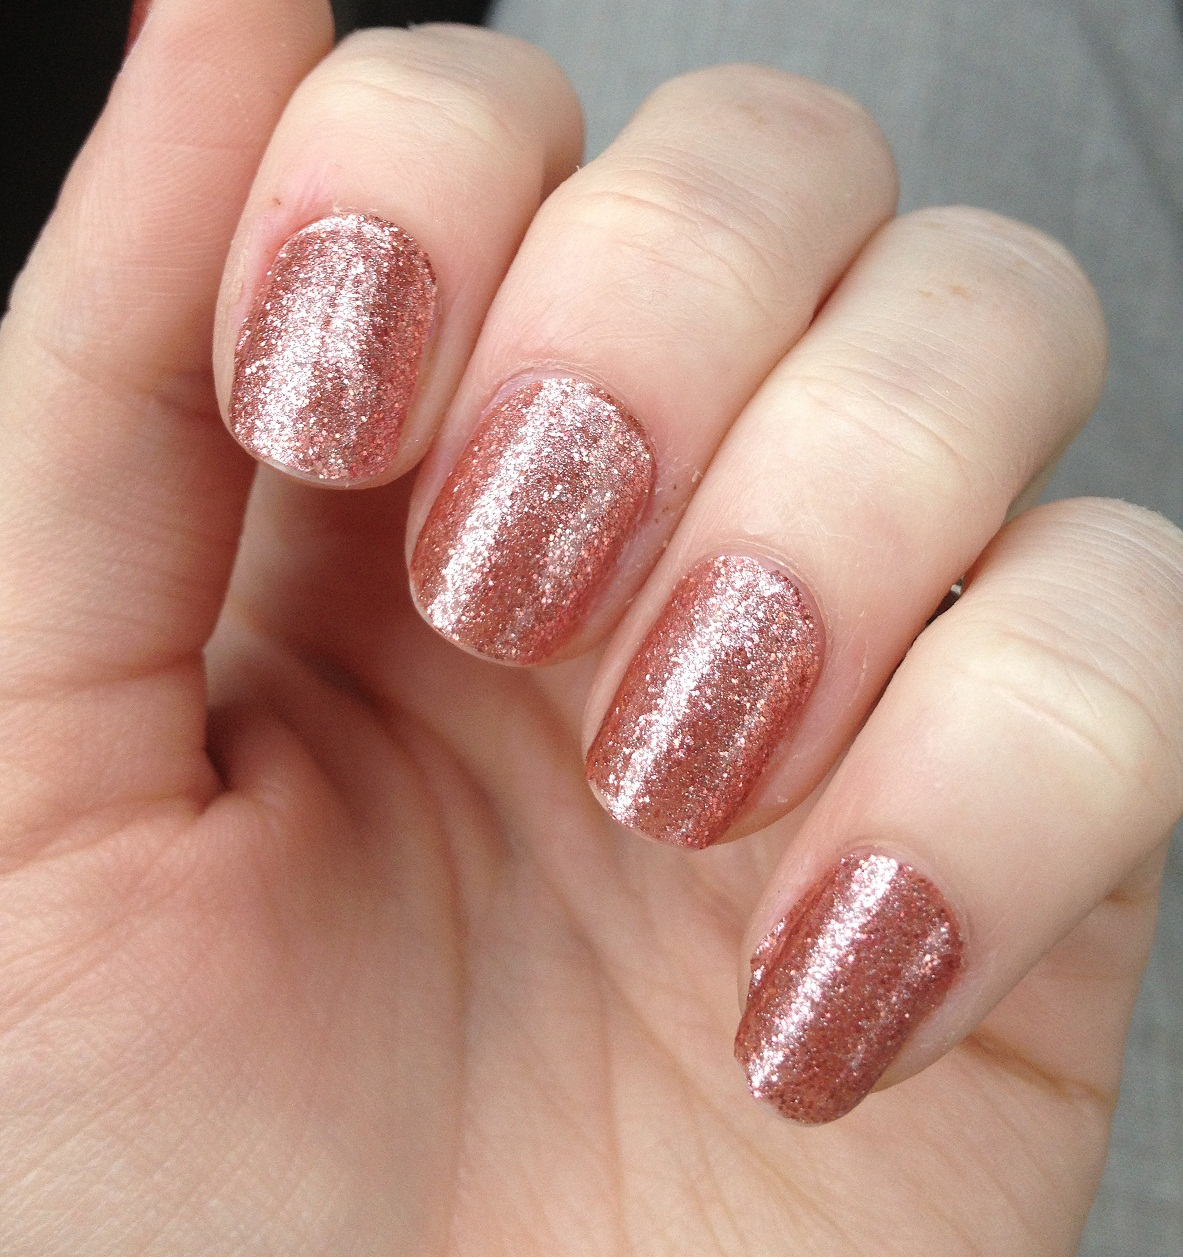 Glazed Over Beauty: Incoco Nail Polish Strips in Penny Rose